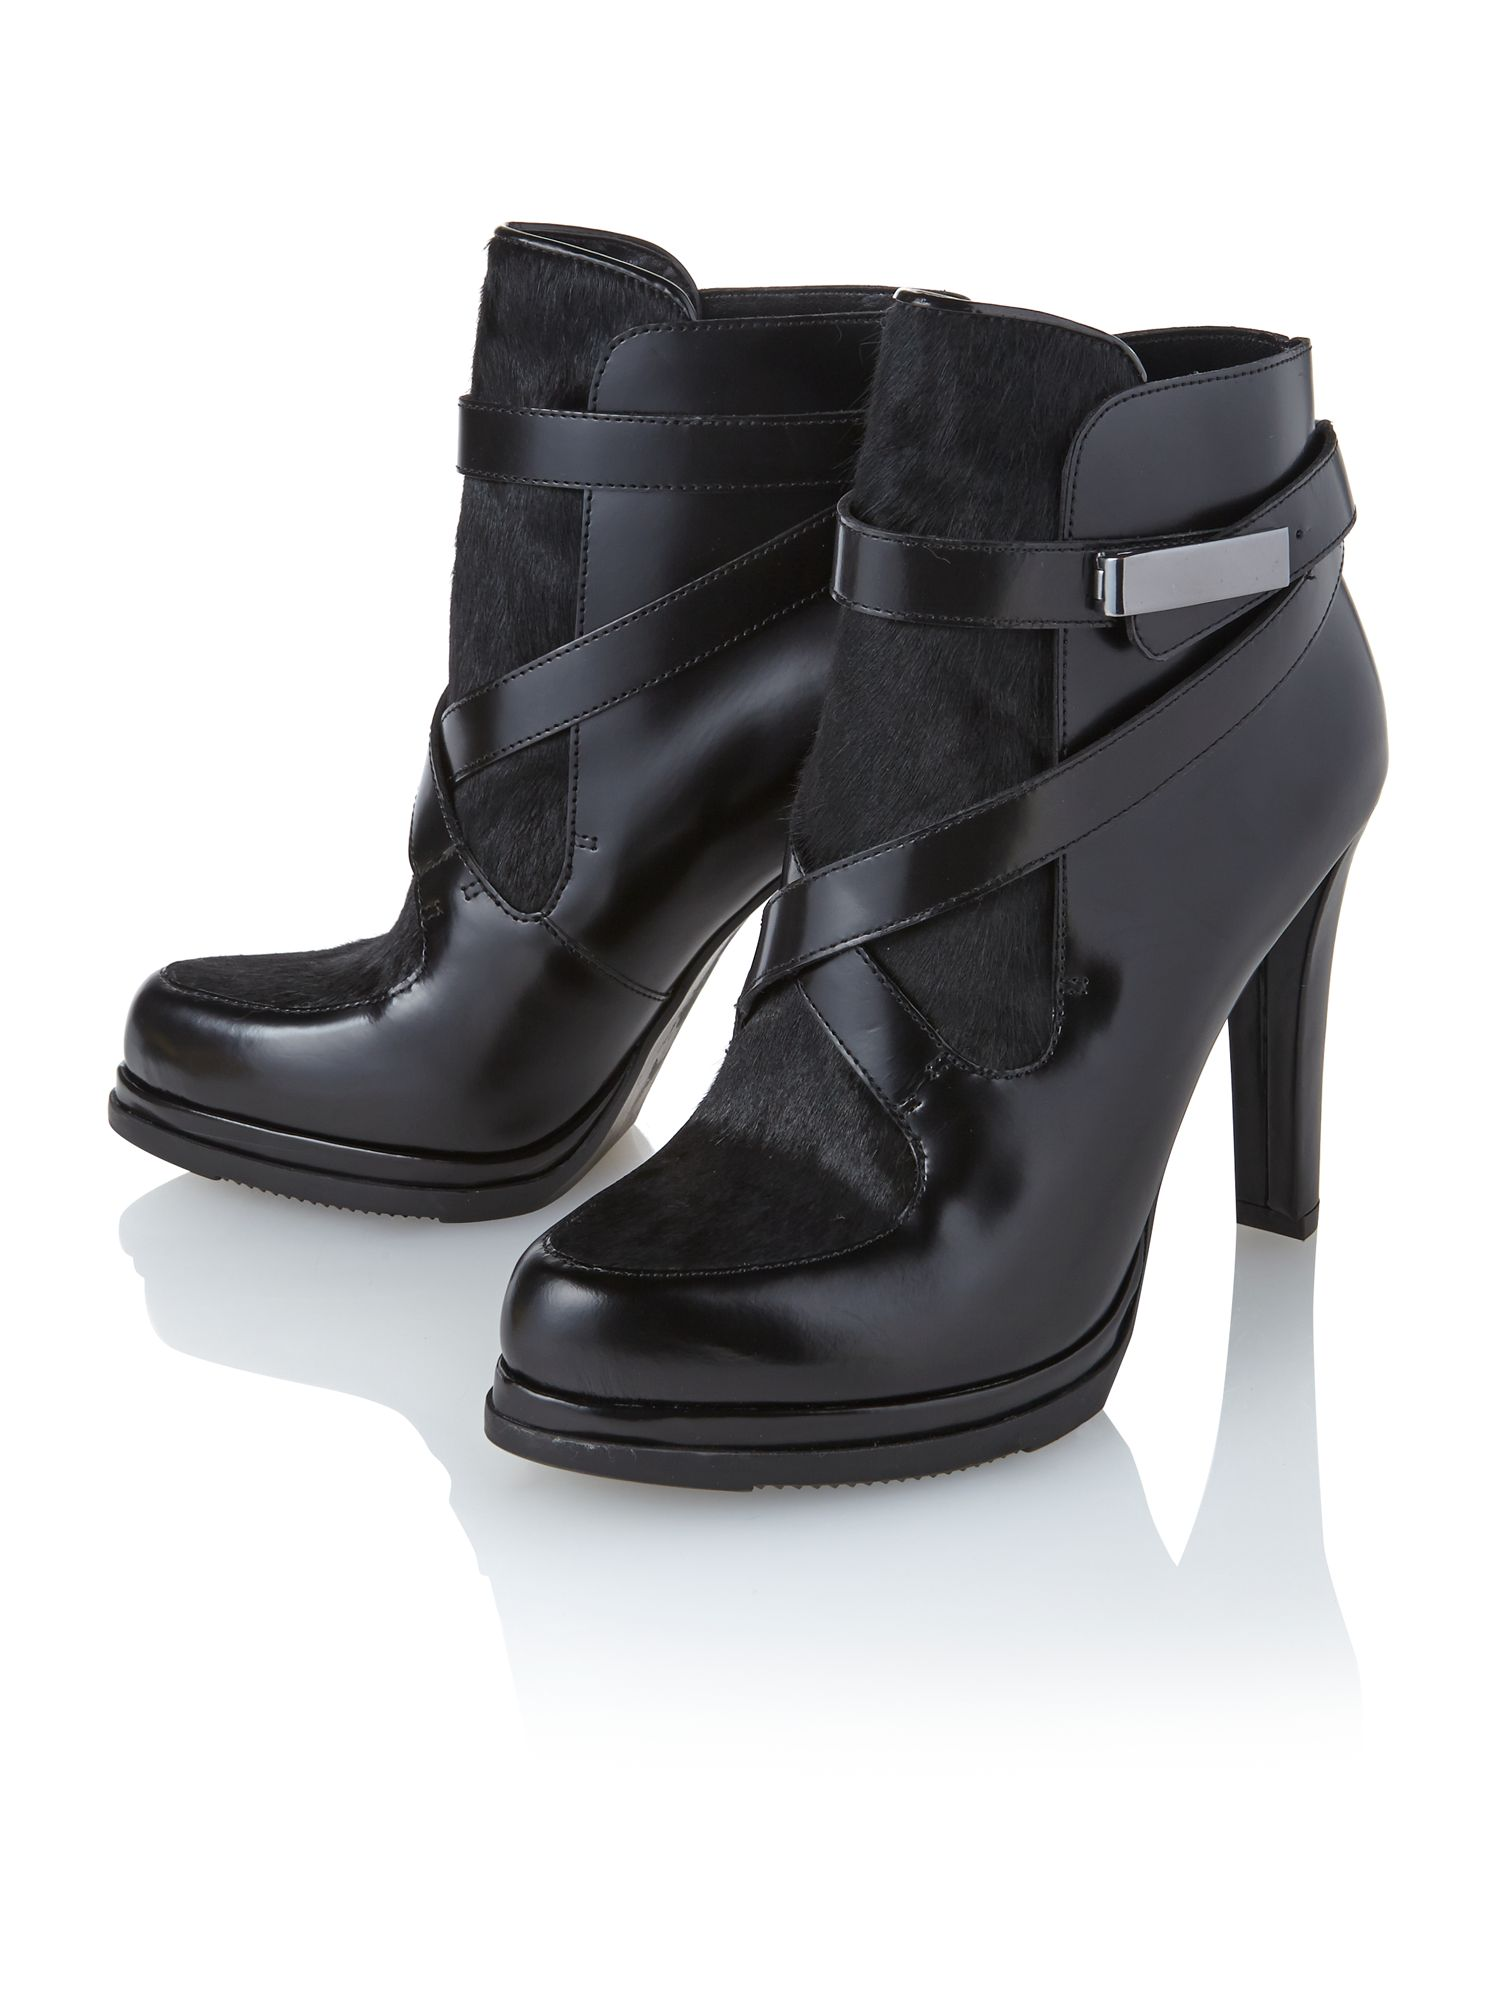 Serena heel and platform ankle boots